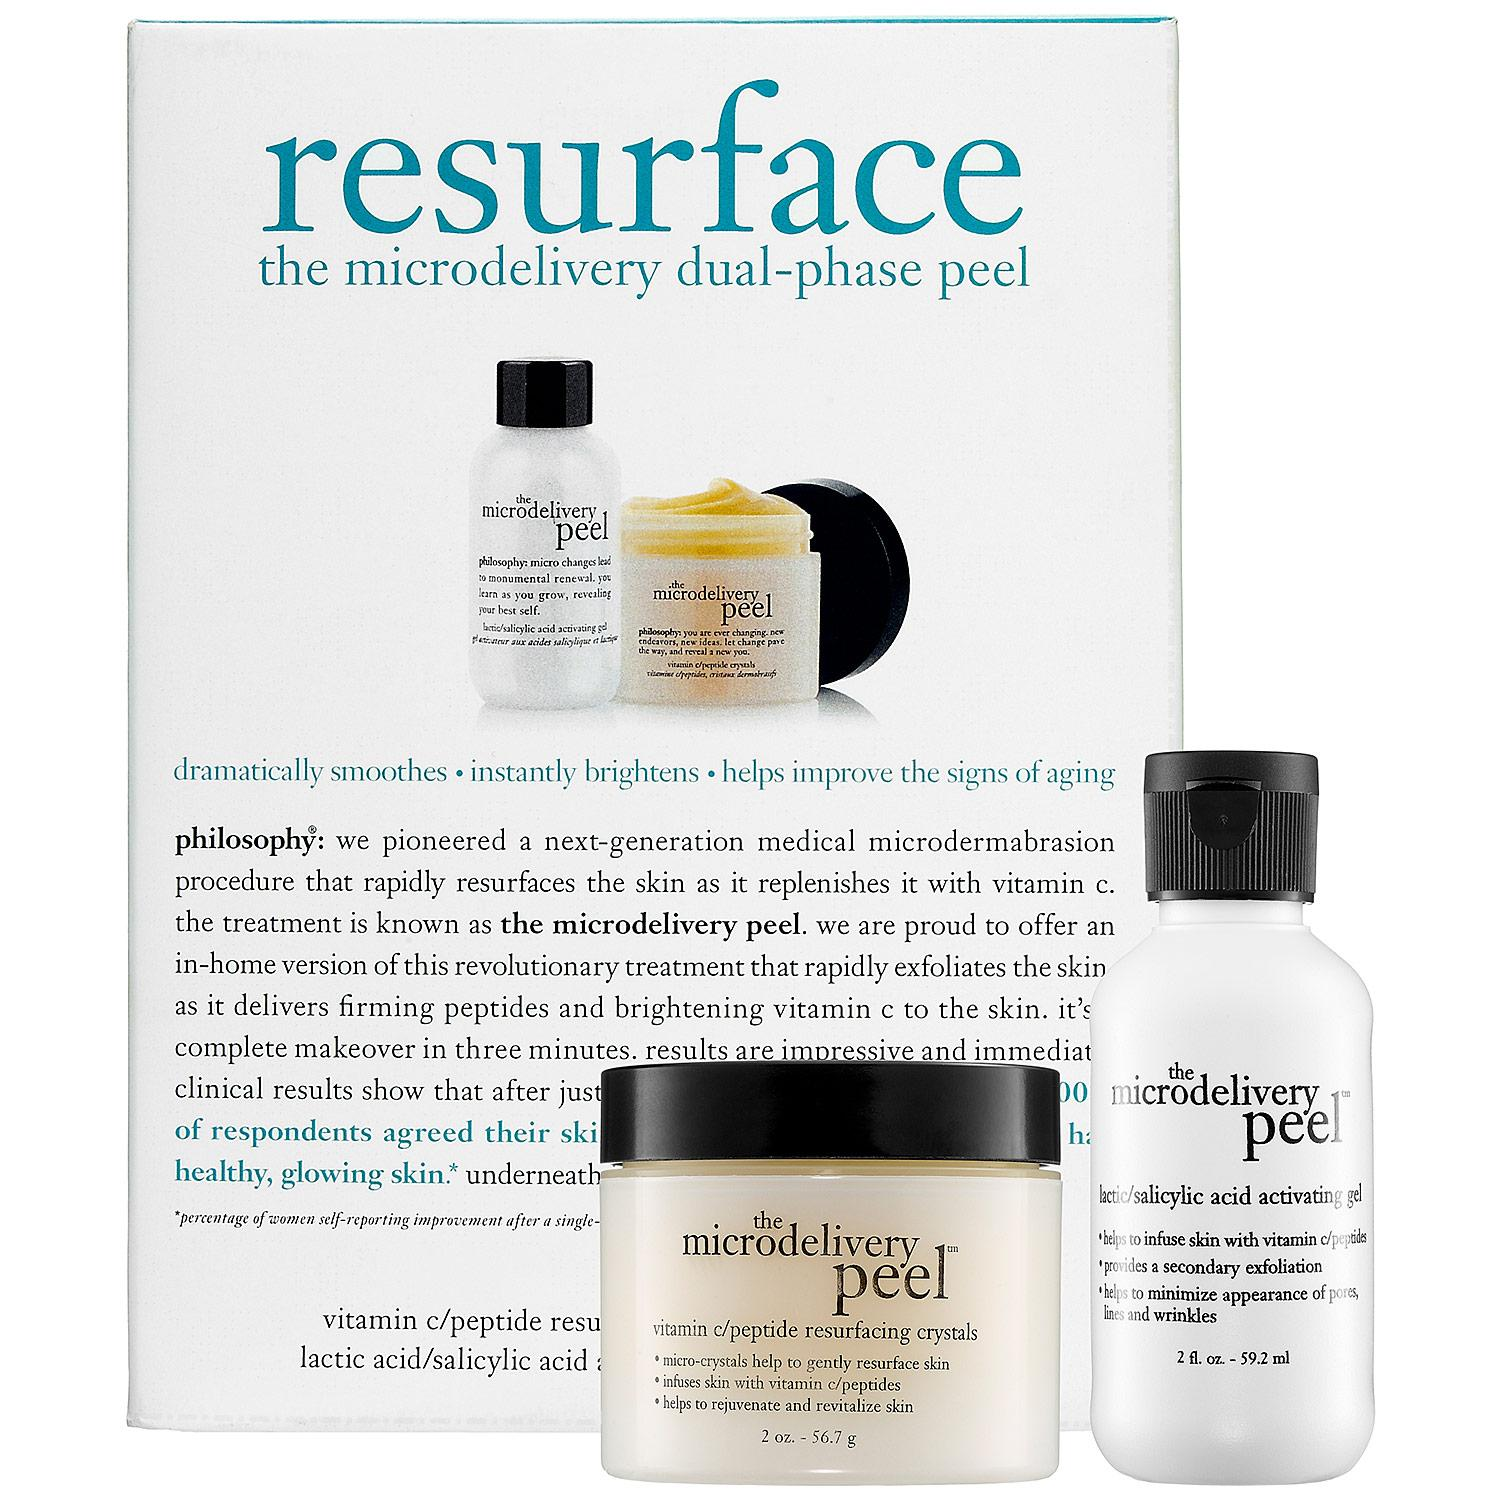 Resurface - The Microdelivery Dual-Phase Peel